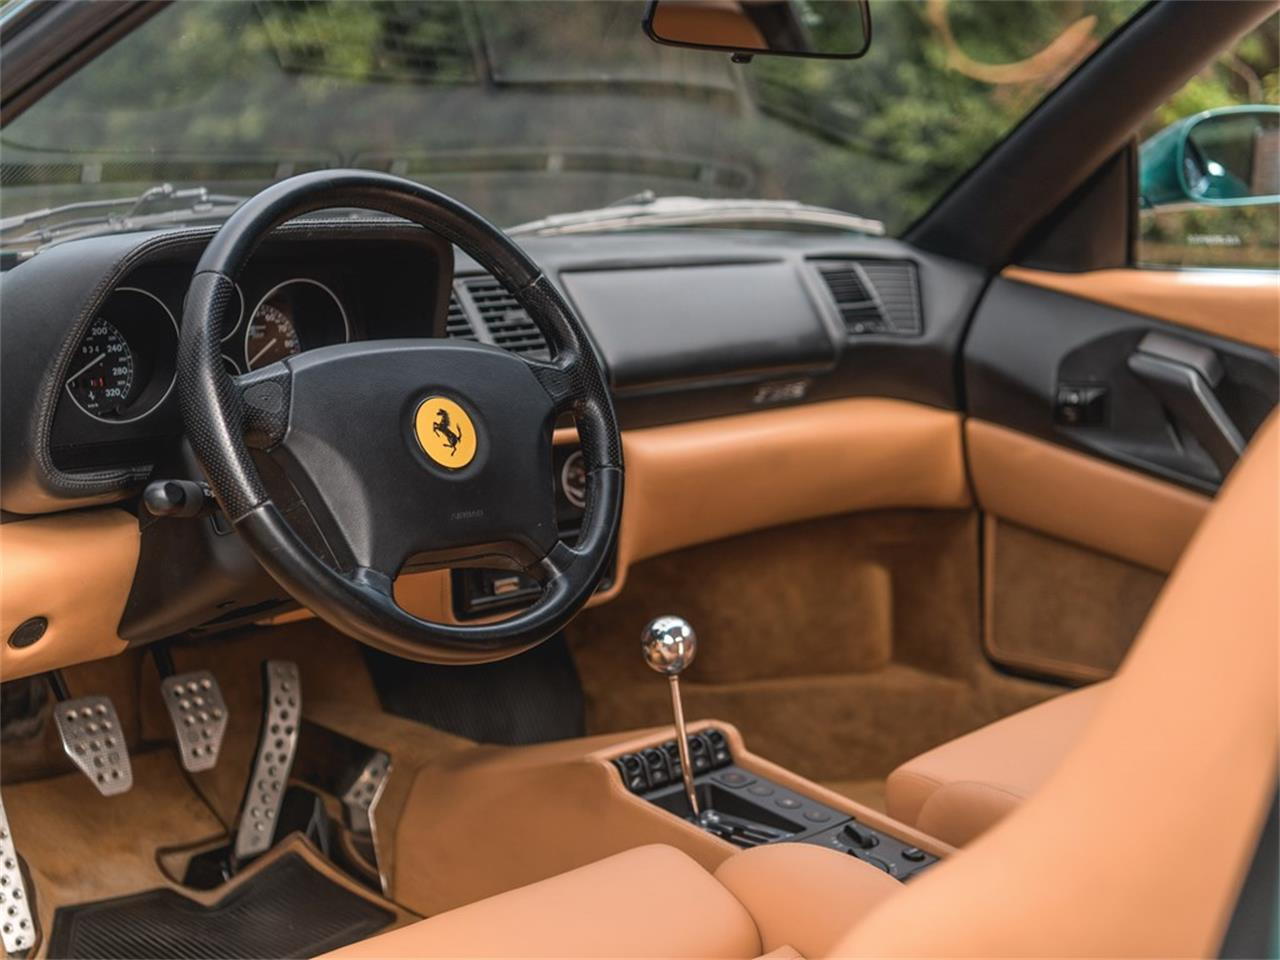 1997 Ferrari F355 Berlinetta (CC-1274036) for sale in Yas Island, Abu Dhabi